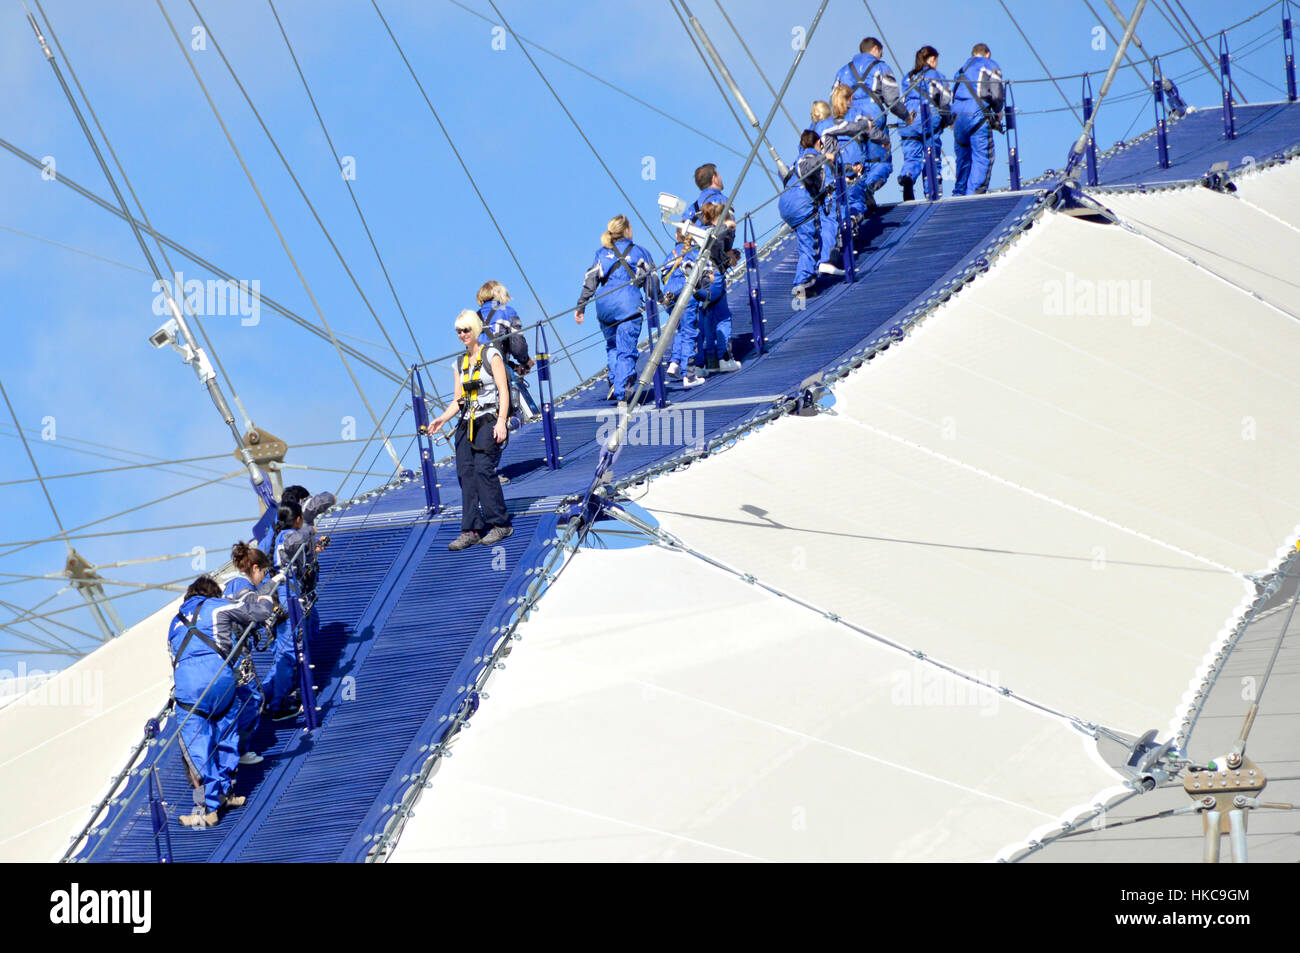 Up At The O2, O2 millenium arena London England millennium dome rooftop walk Skywalk people wearing blue overalls - Stock Image